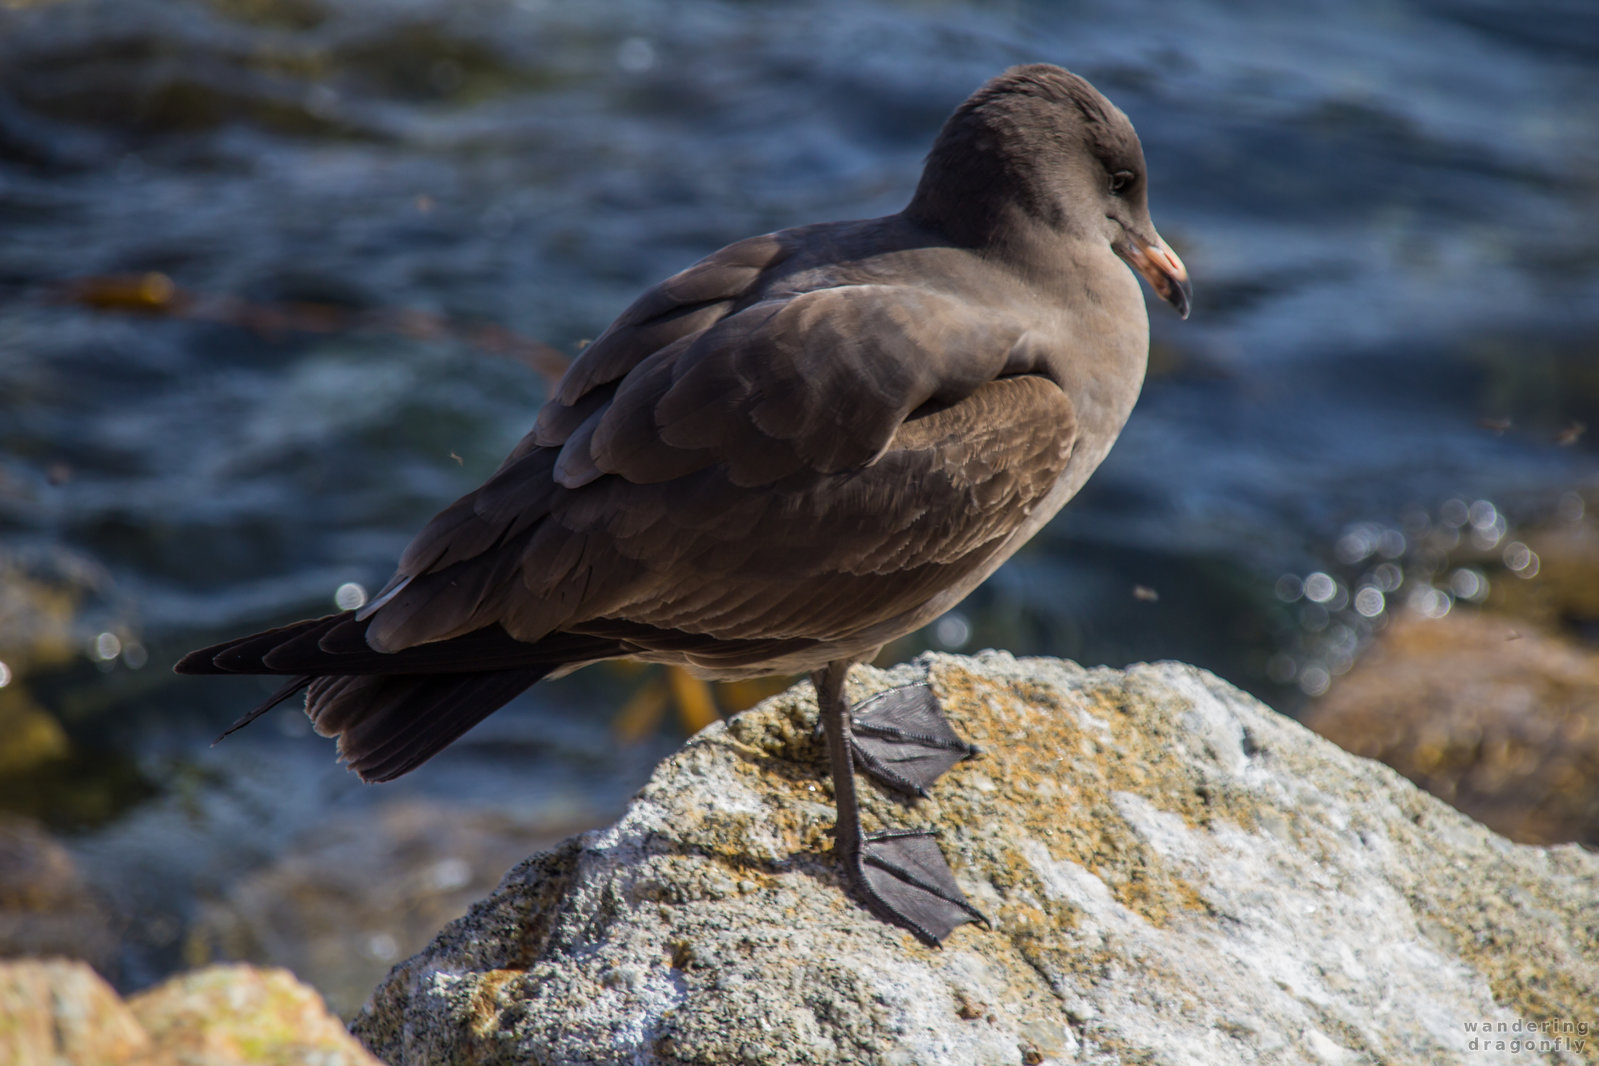 The shy -- bird, cliff, gull, ocean, rock, water